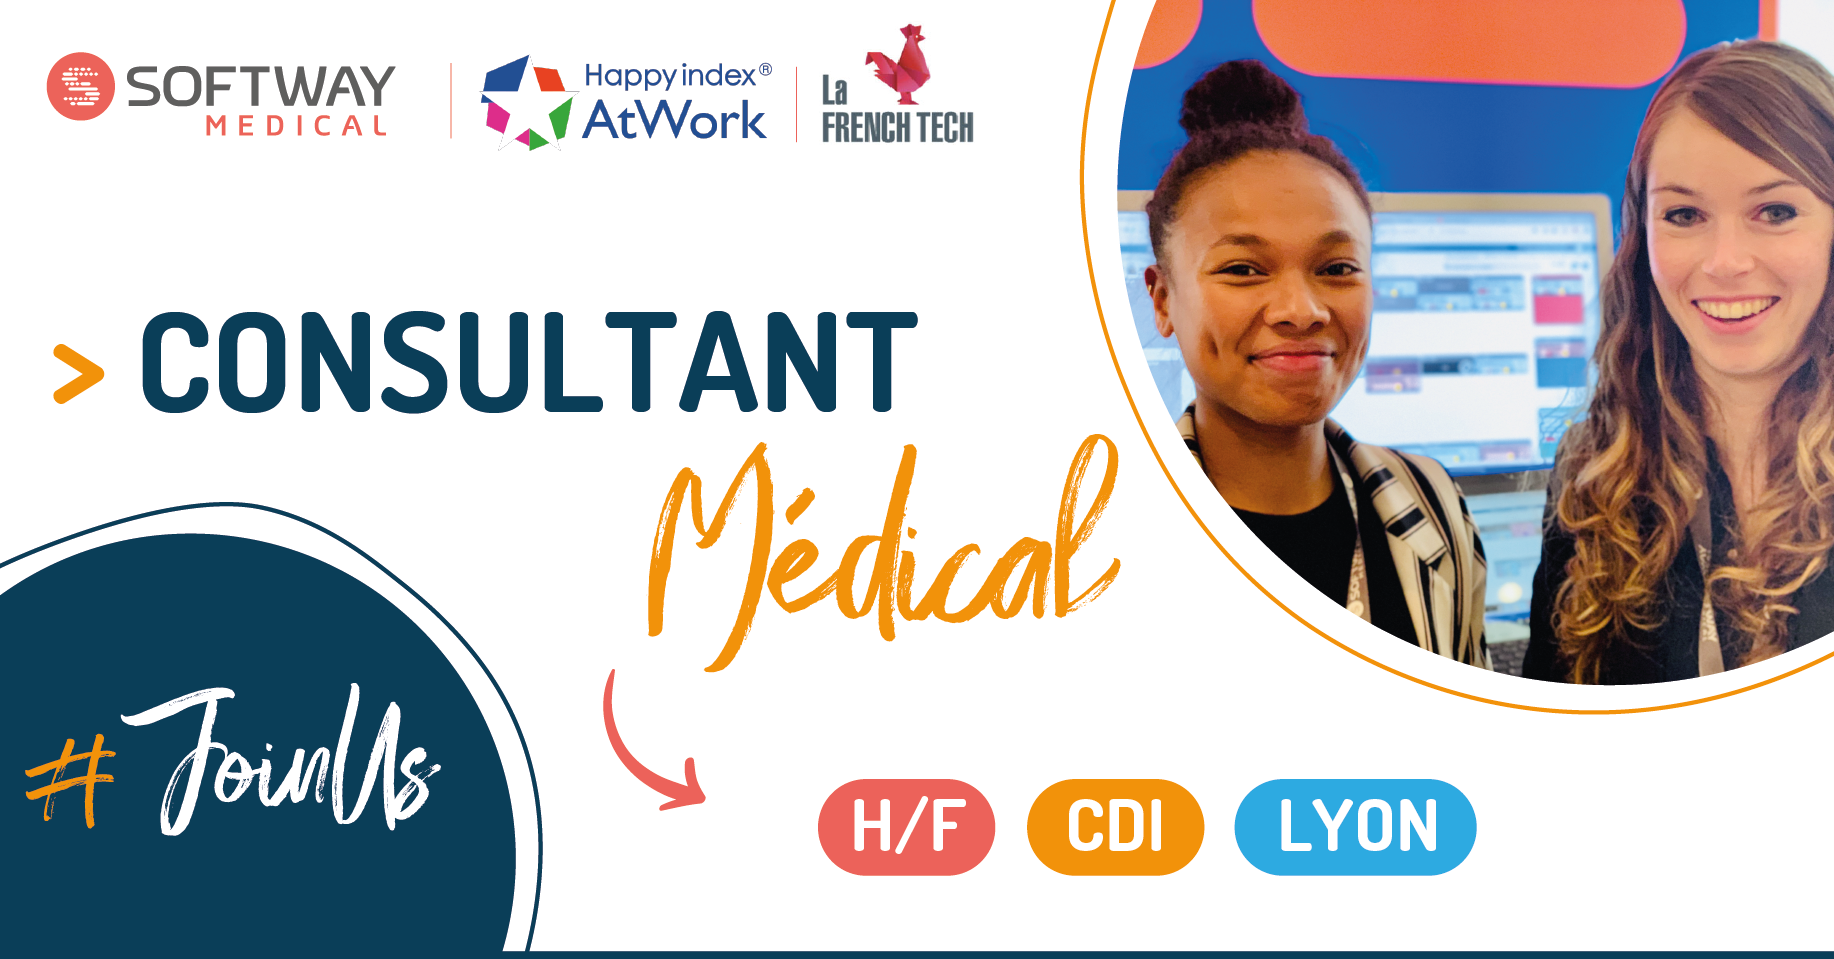 CONSULTANT FONCTIONNEL MEDICAL – H/F – Lyon